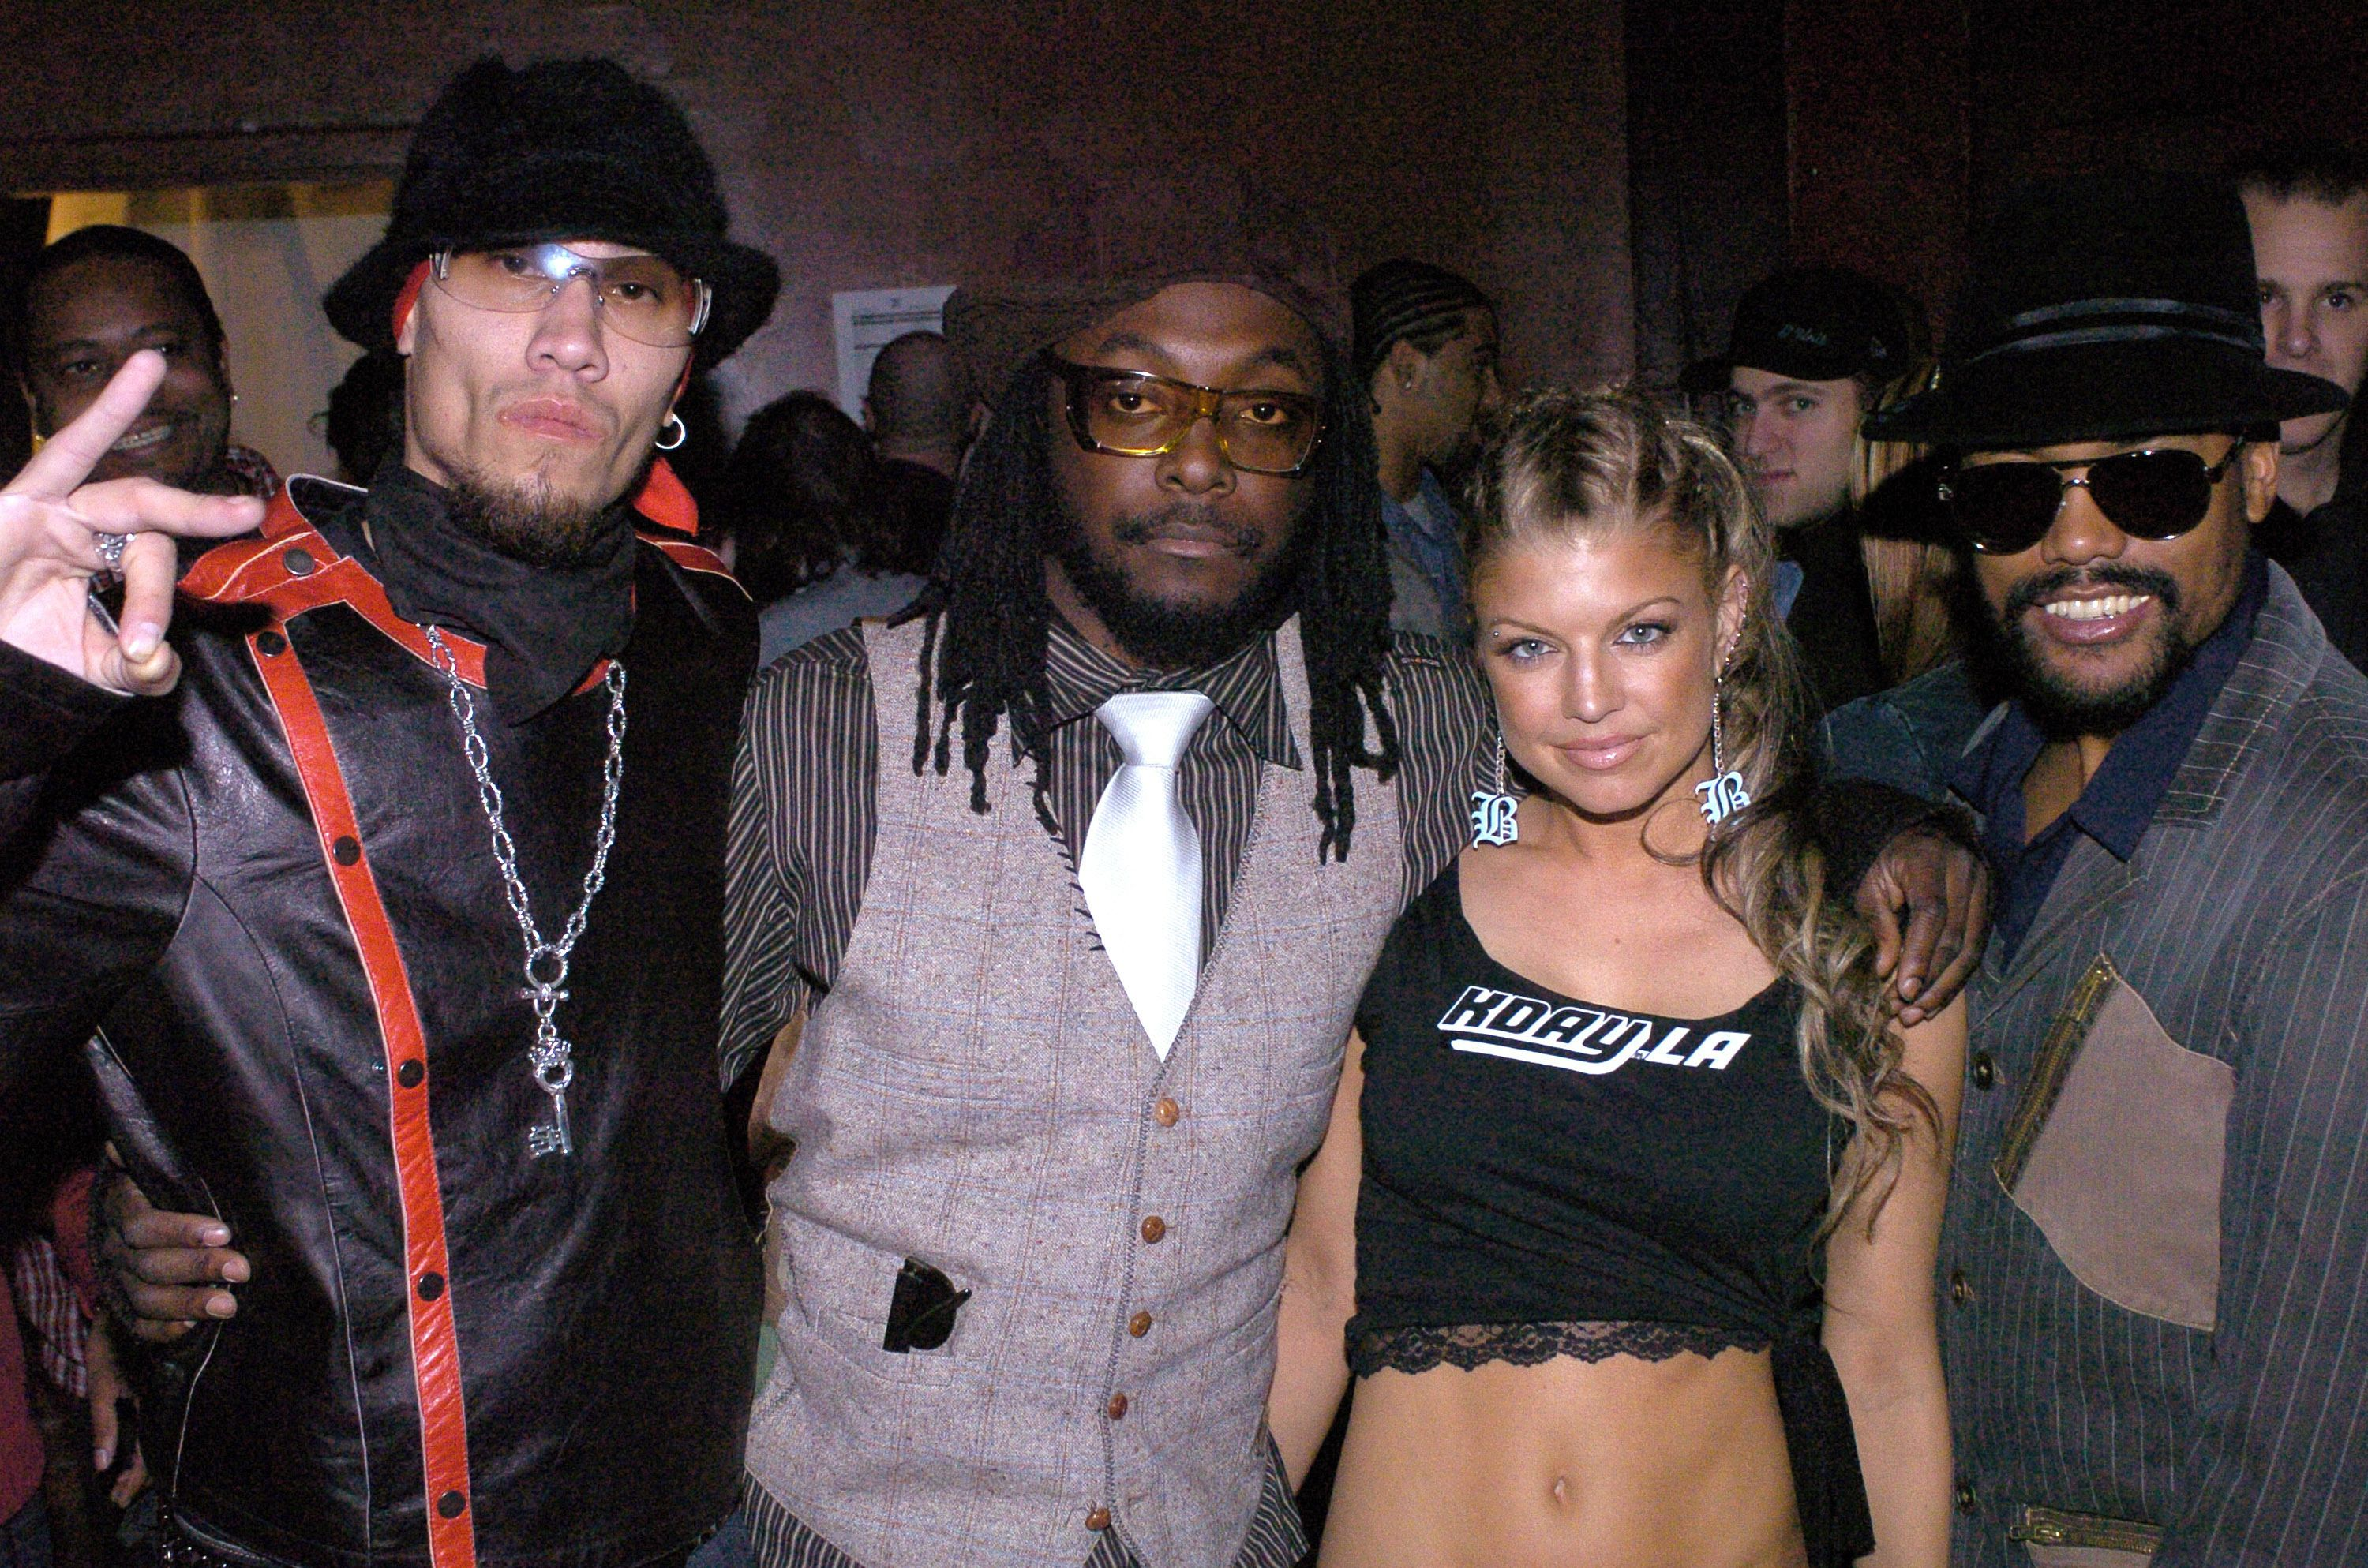 A Ranked List of the Top 10 Best Black Eyed Peas Songs